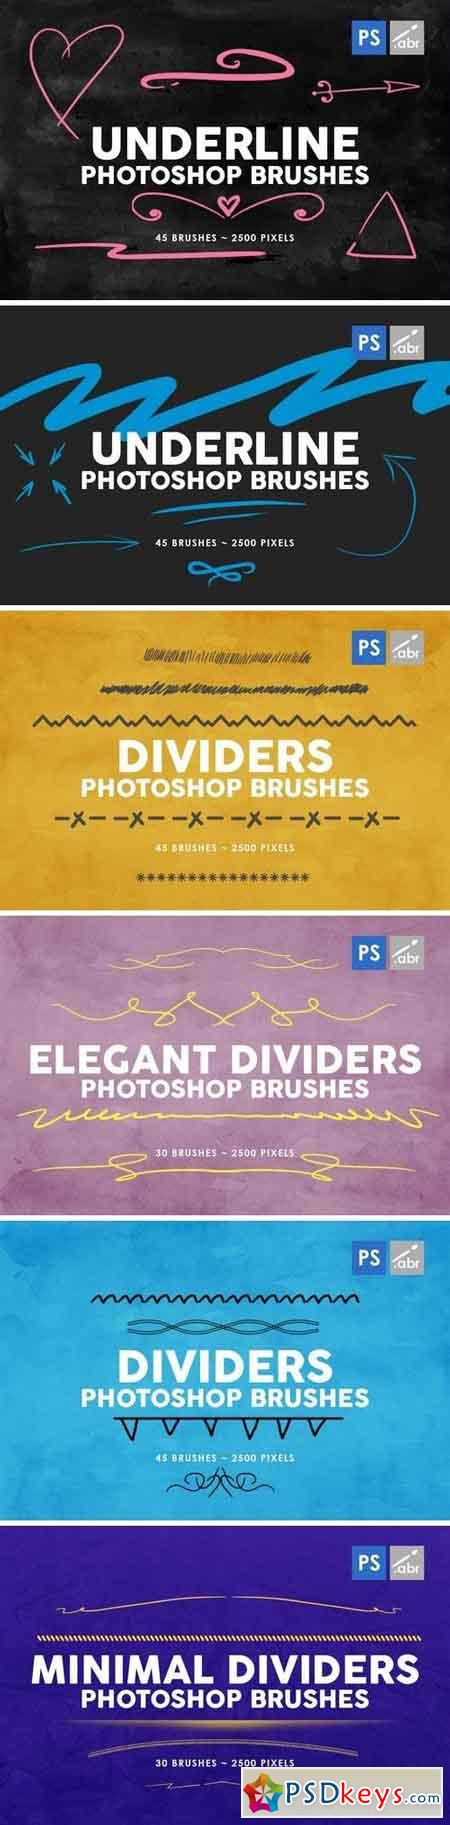 240 Dividers and Underline Photoshop Stamp Brushes